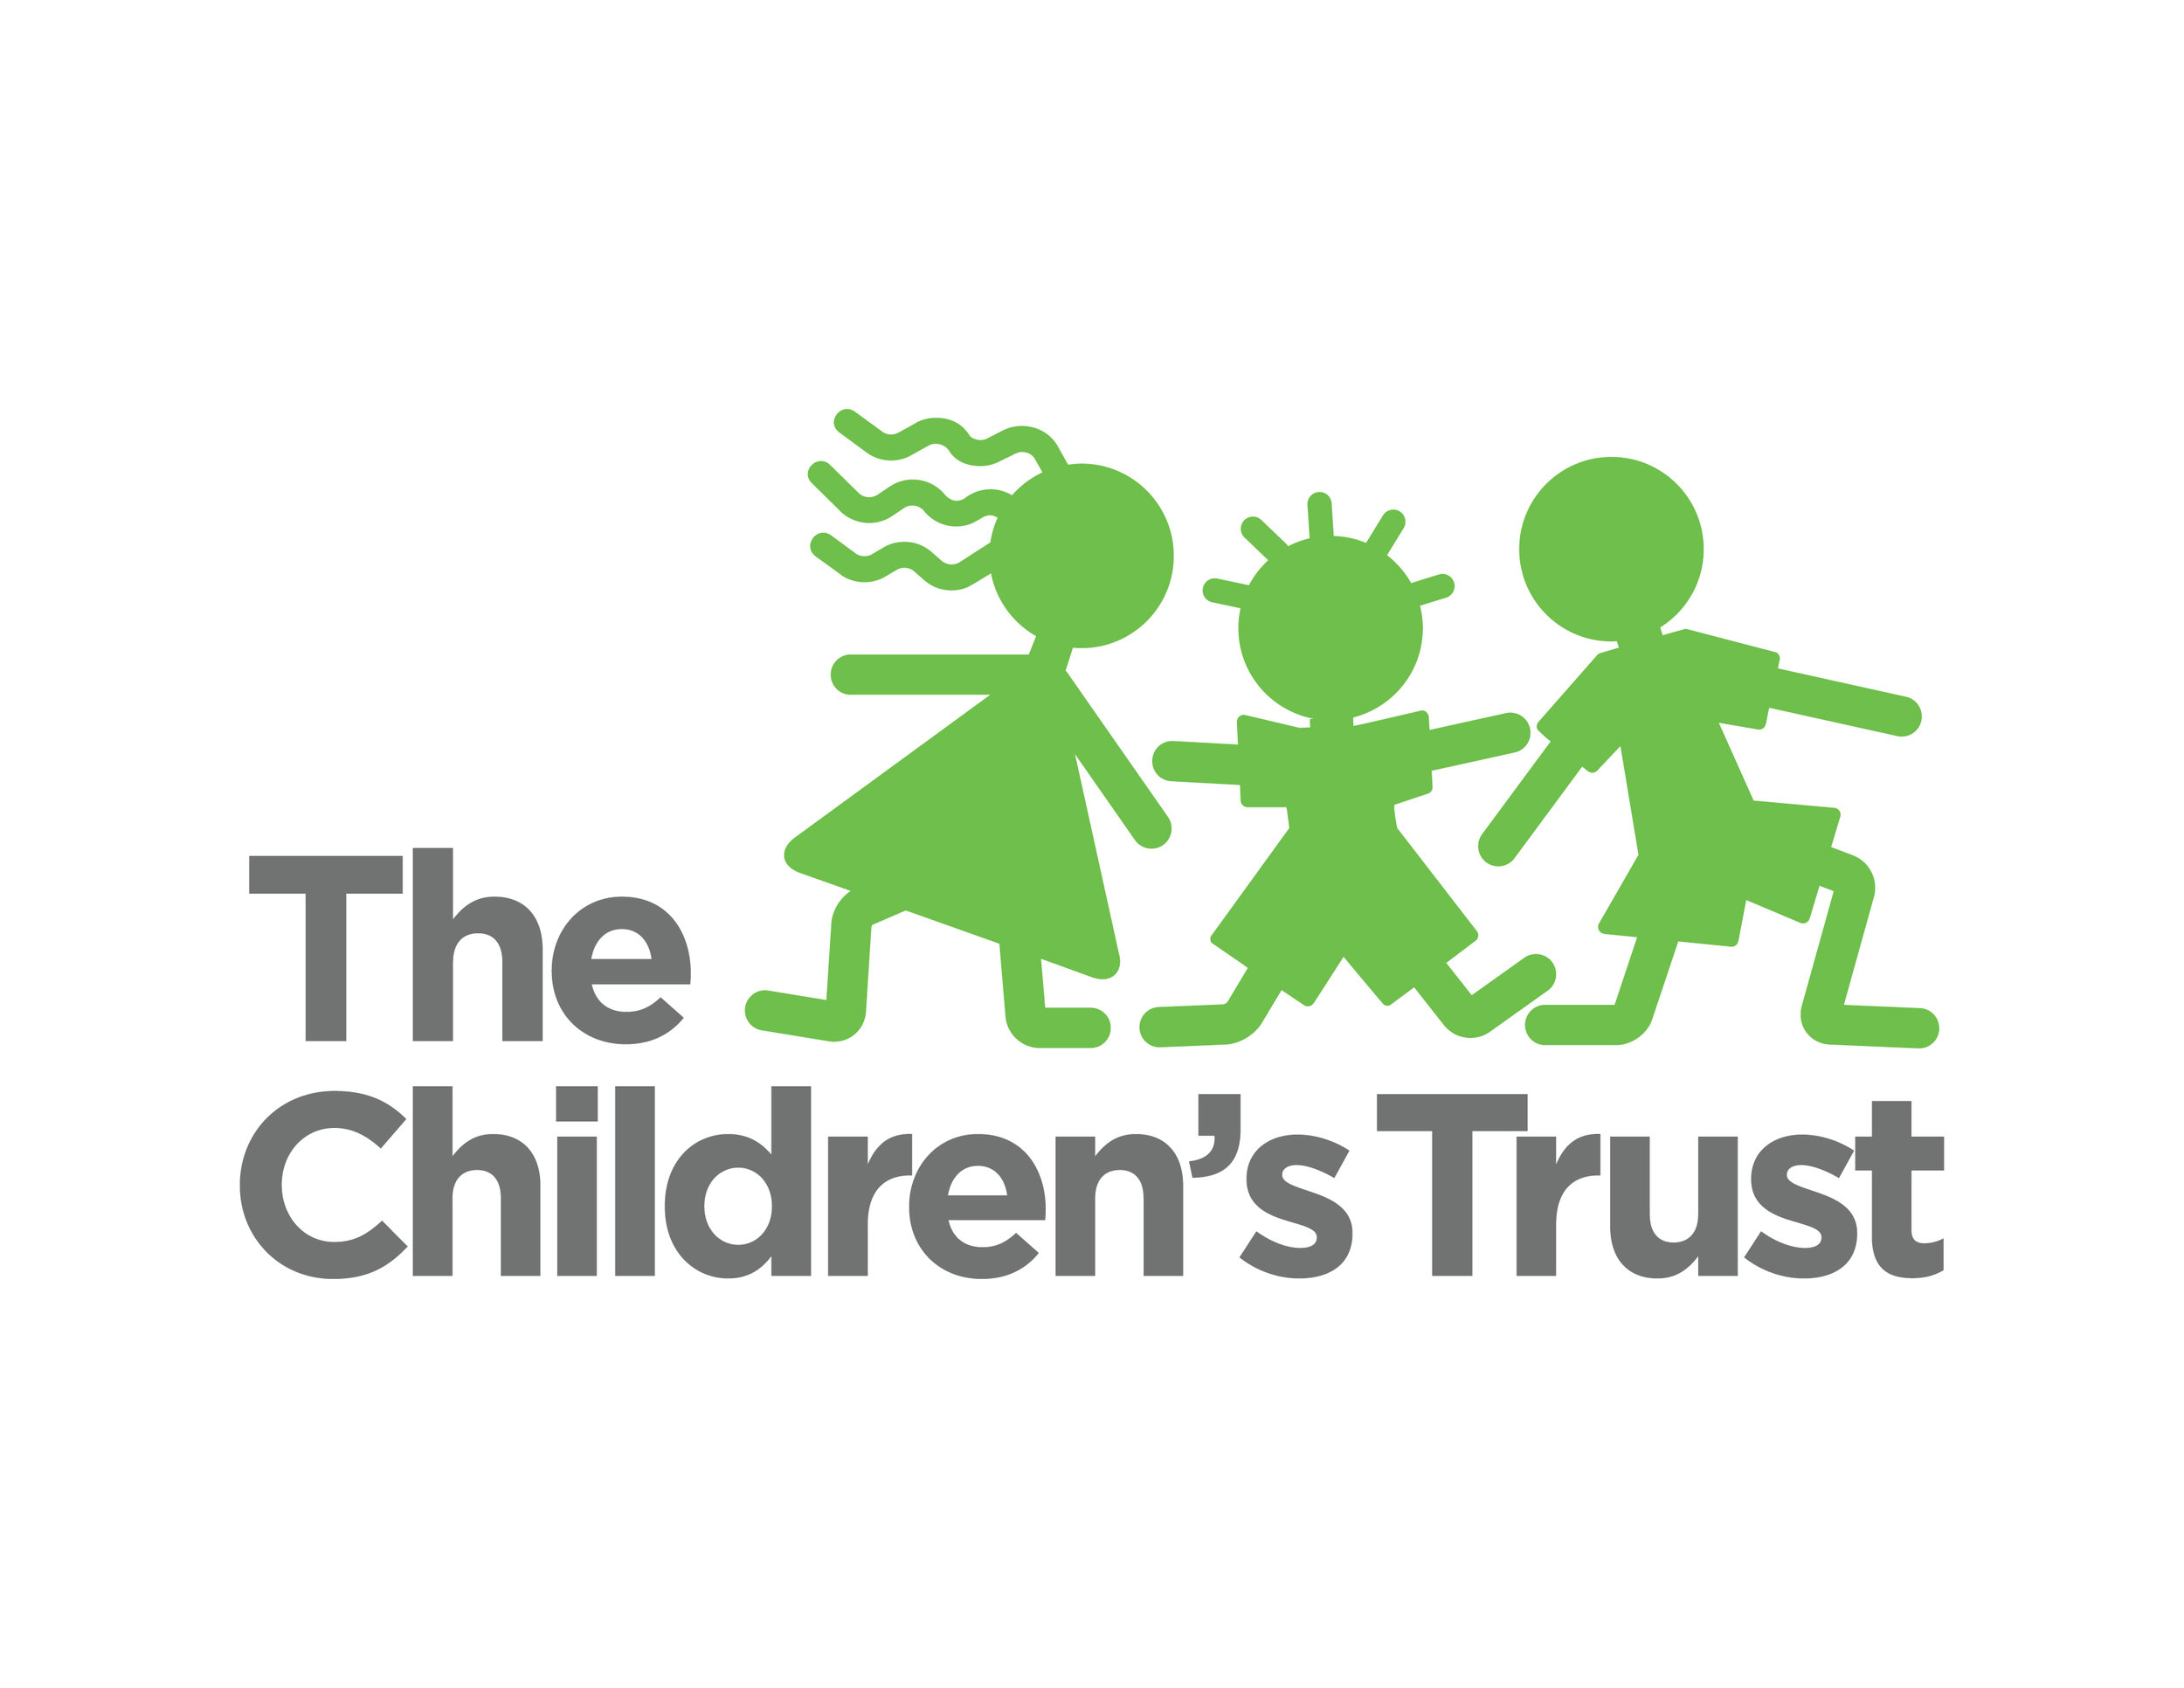 childrens trust.jpg